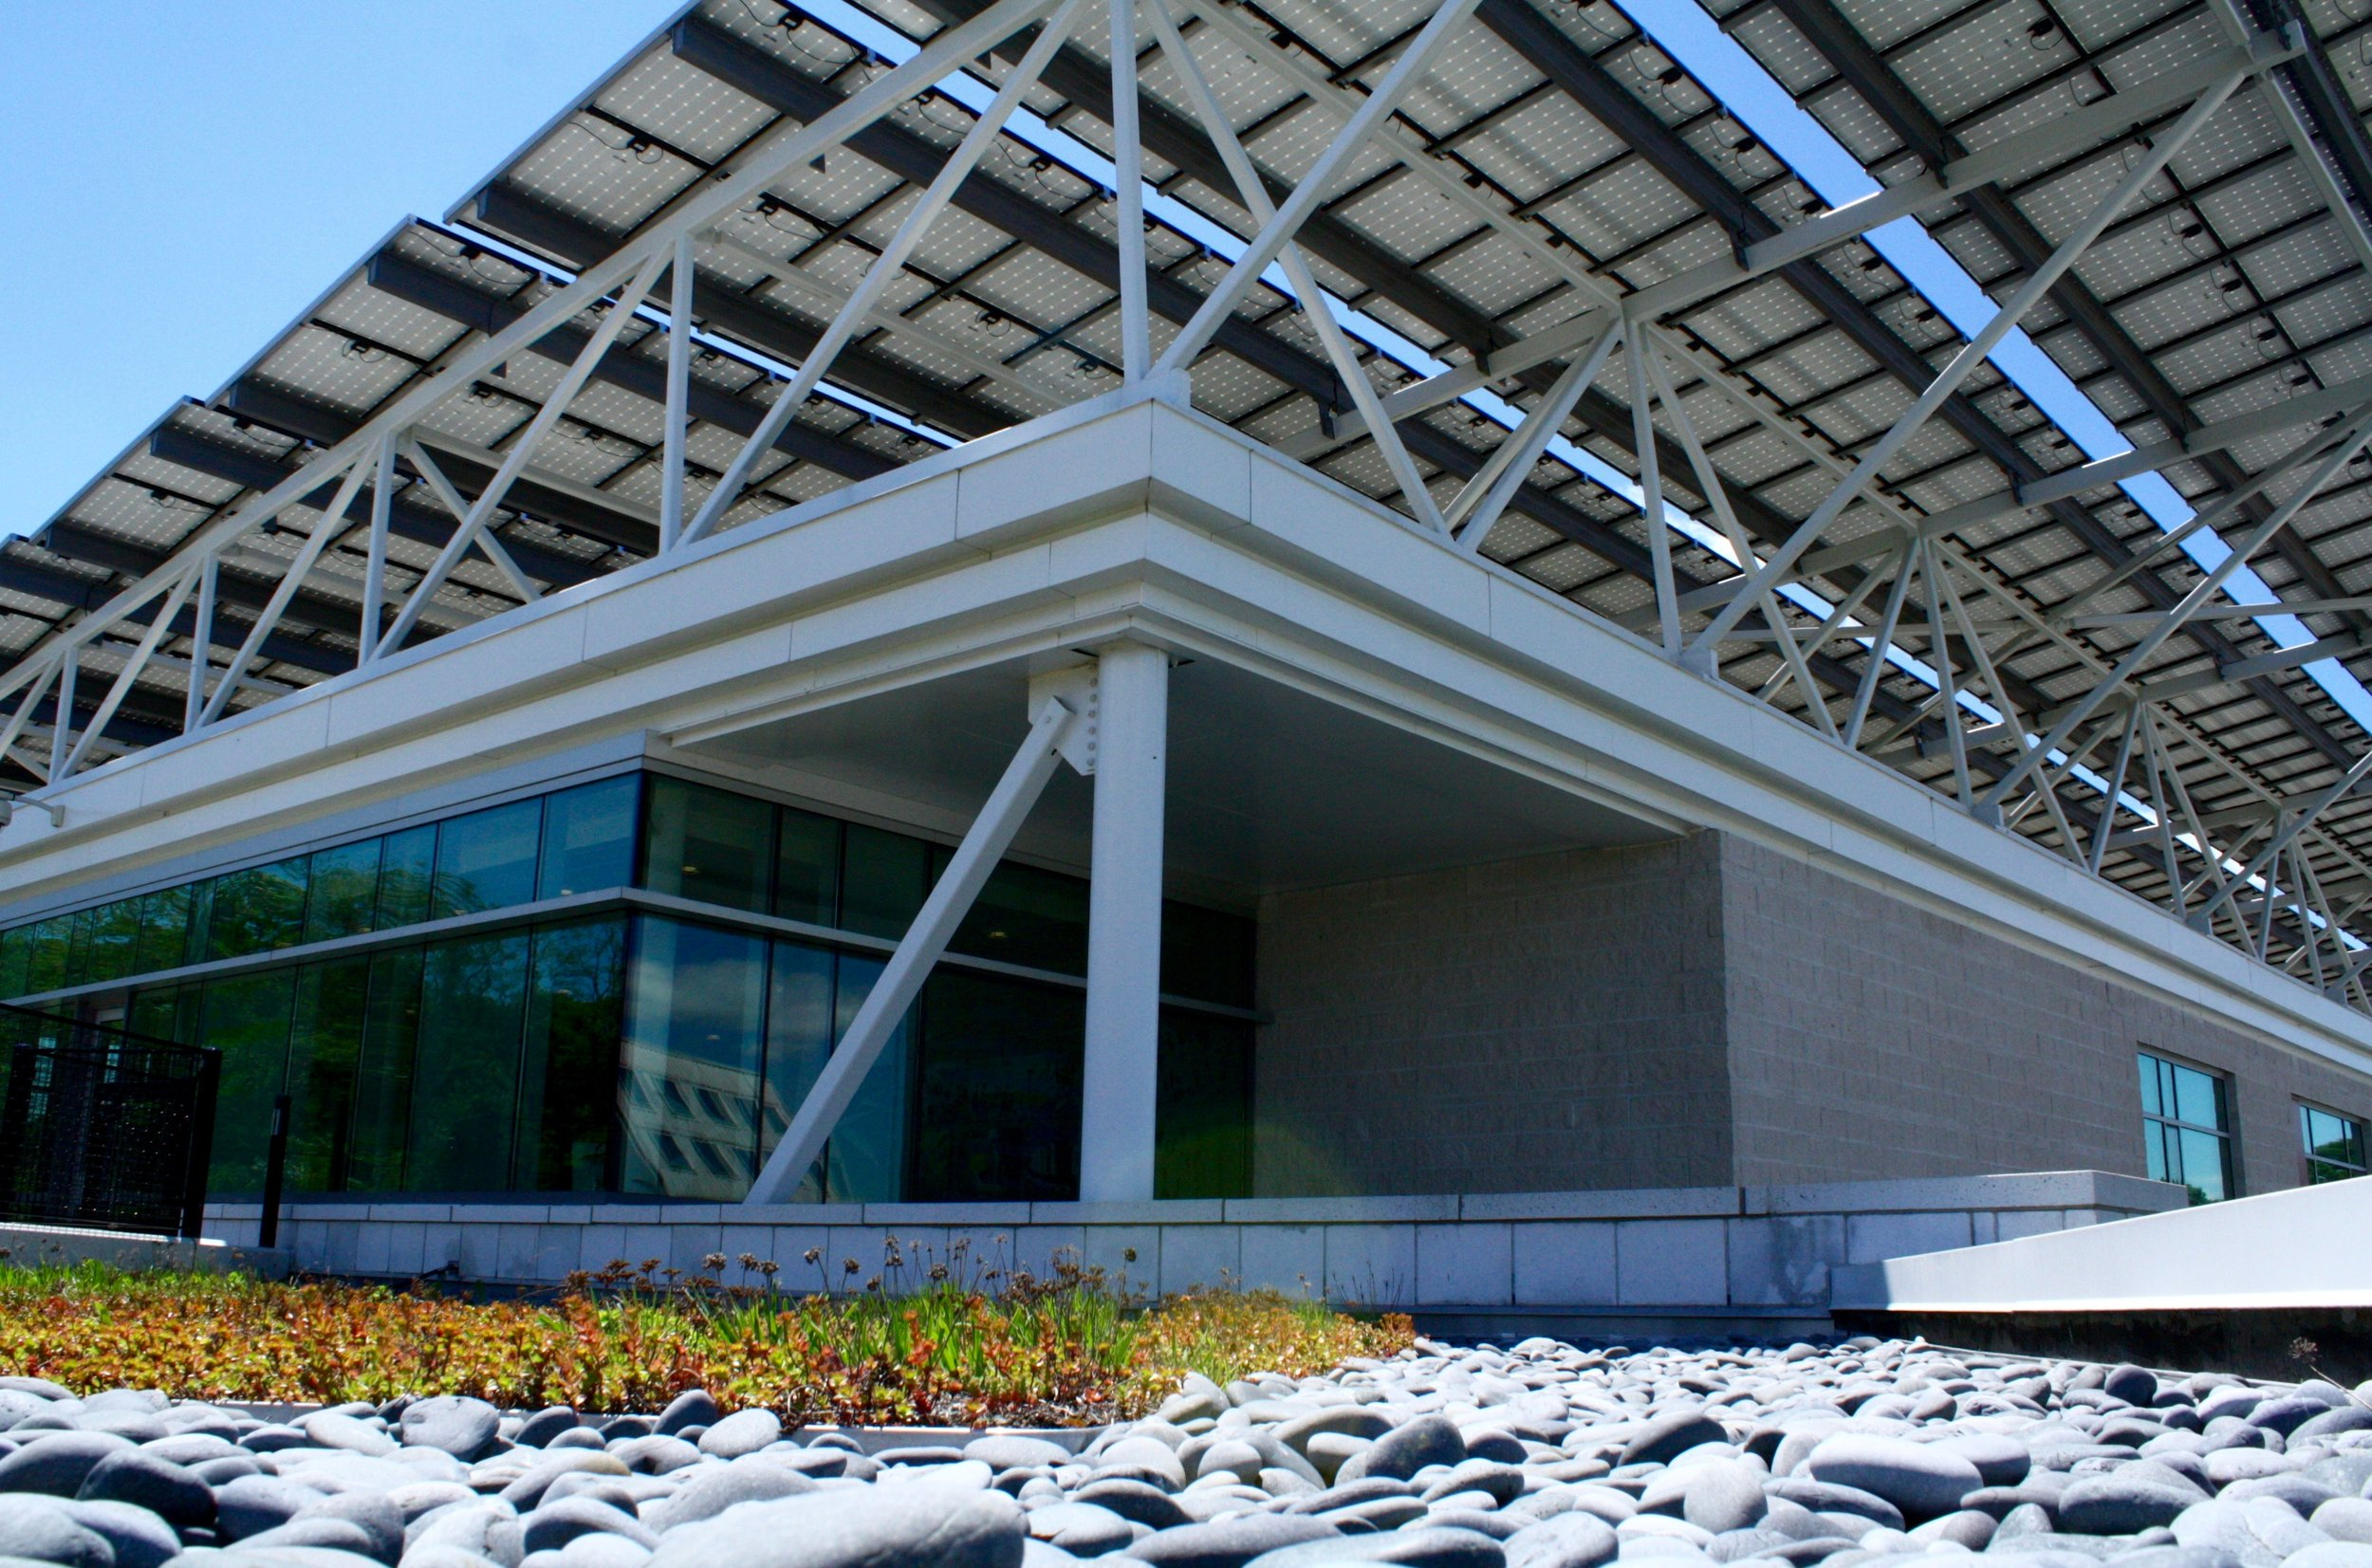 recover-green-roofs-north-shore-cc-2014-1.jpg